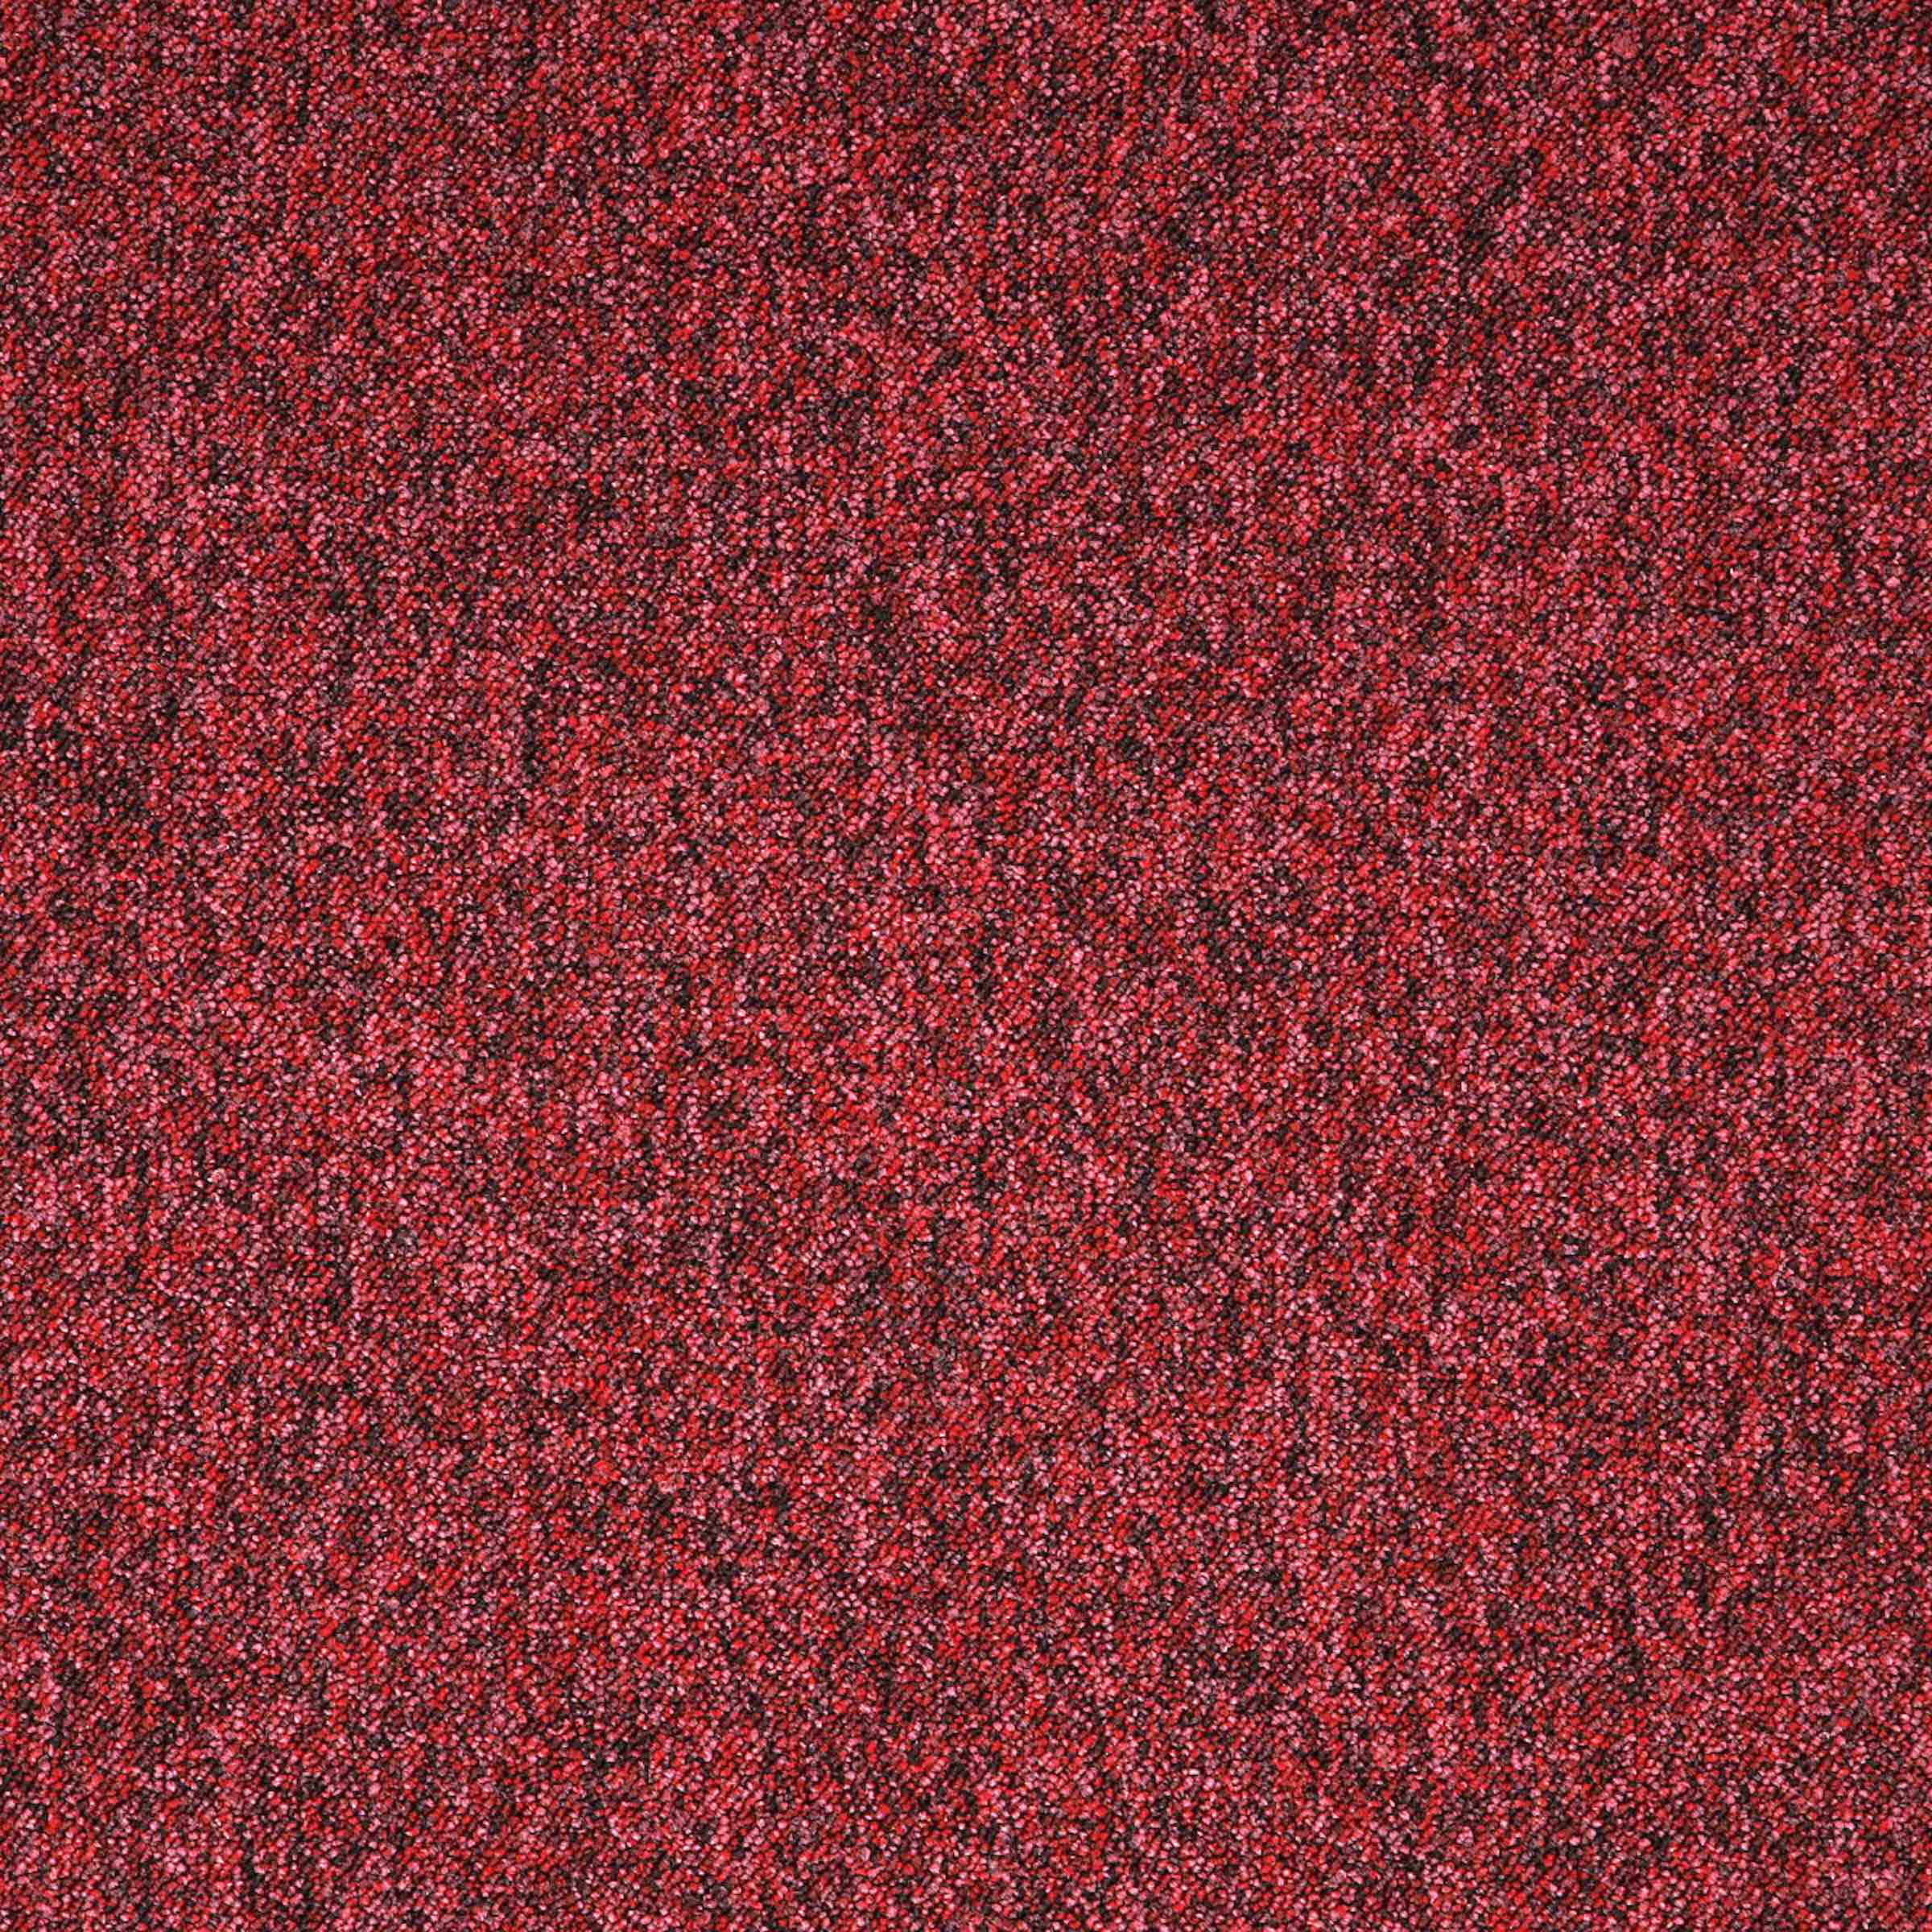 Toccarre | Desmo | Paragon Carpet Tiles | Commercial Carpet Tiles